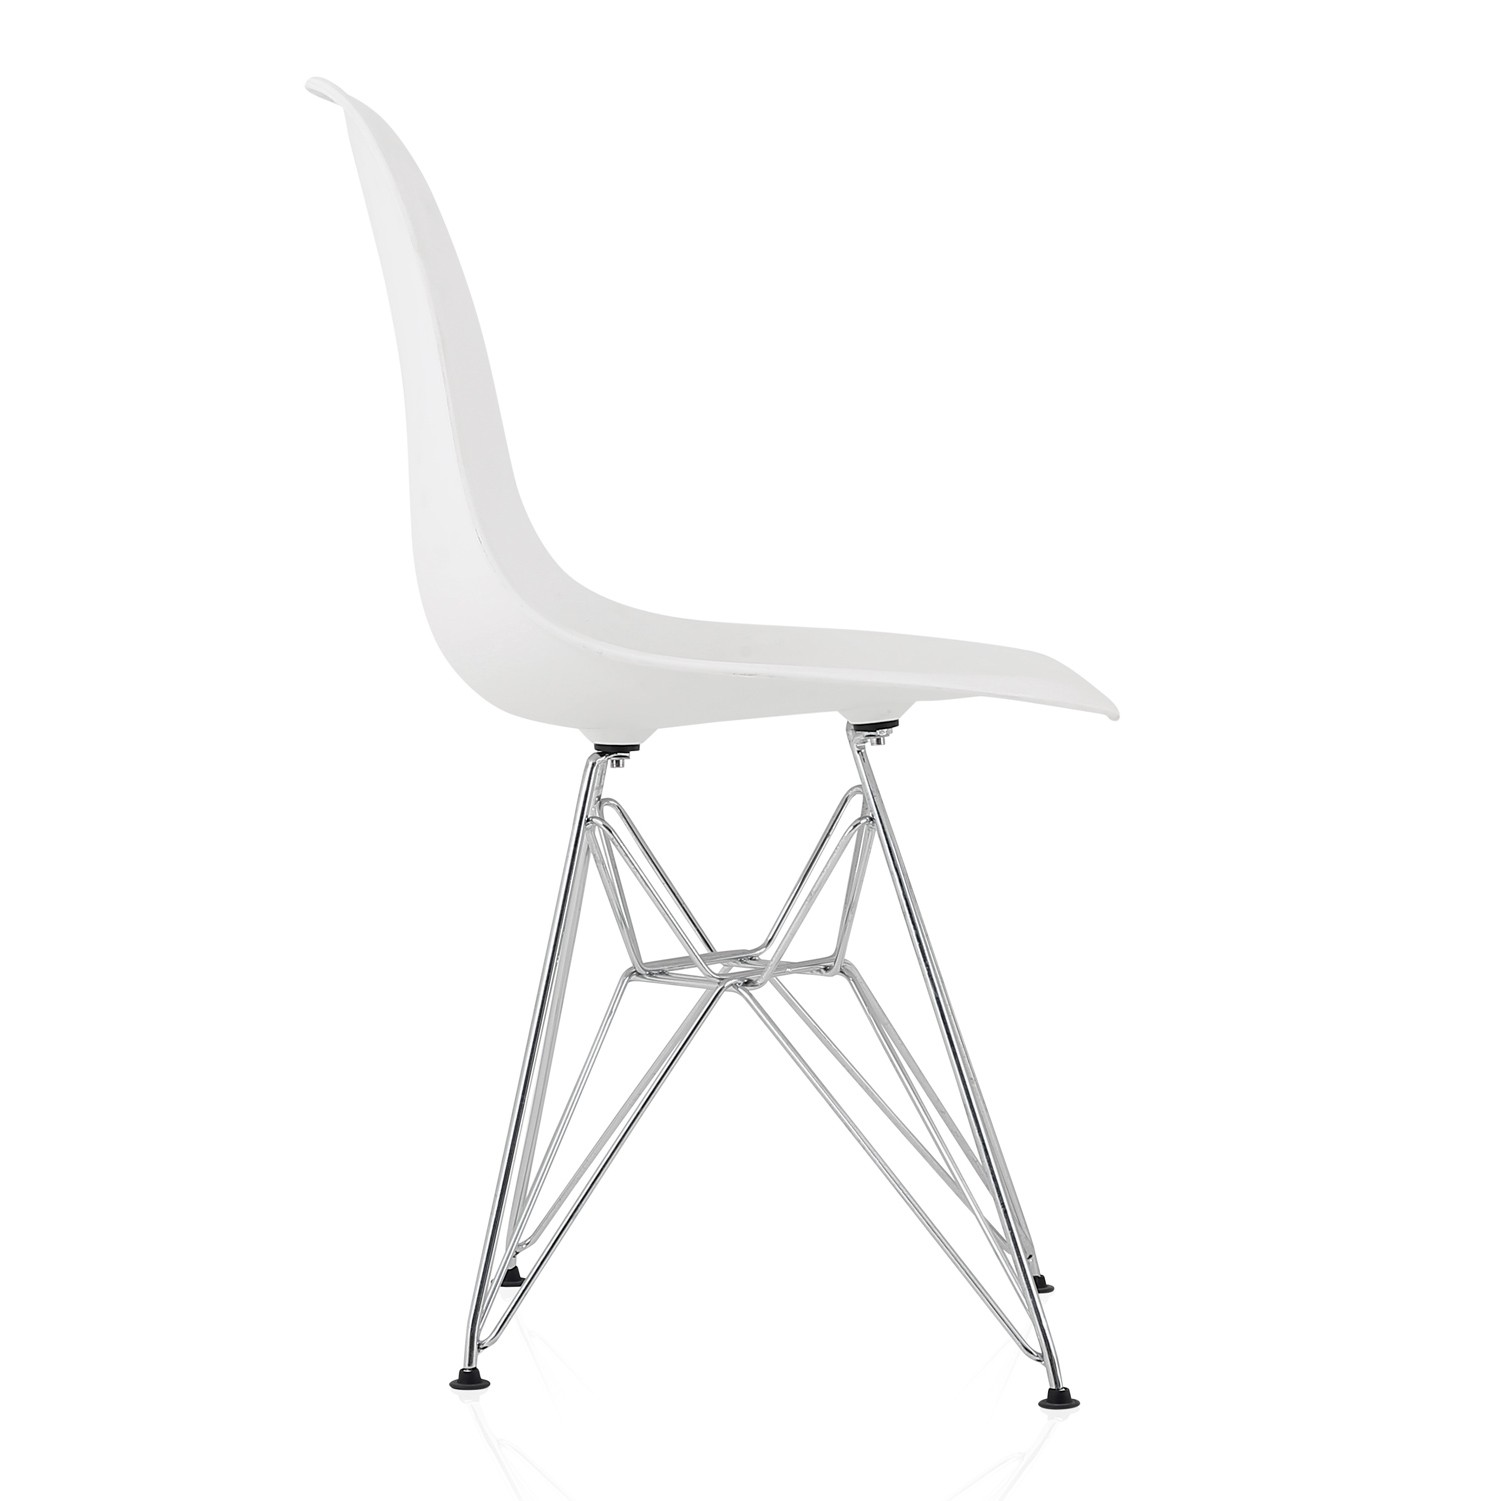 plastic chairs with steel legs rebar lowes eames style dsr molded white dining shell chair